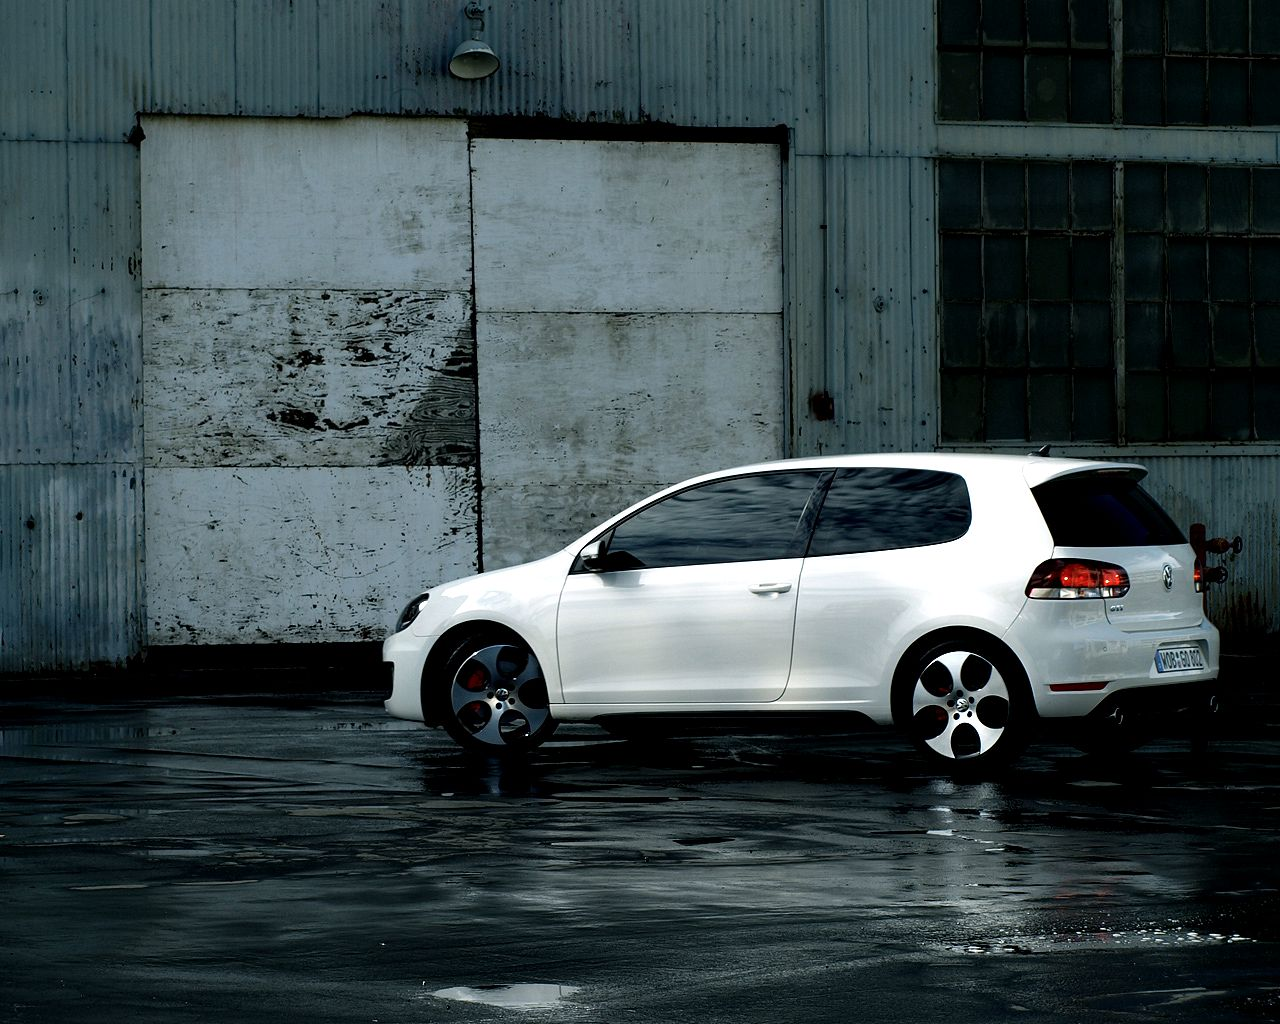 Golf_Gti_Wallpapers6